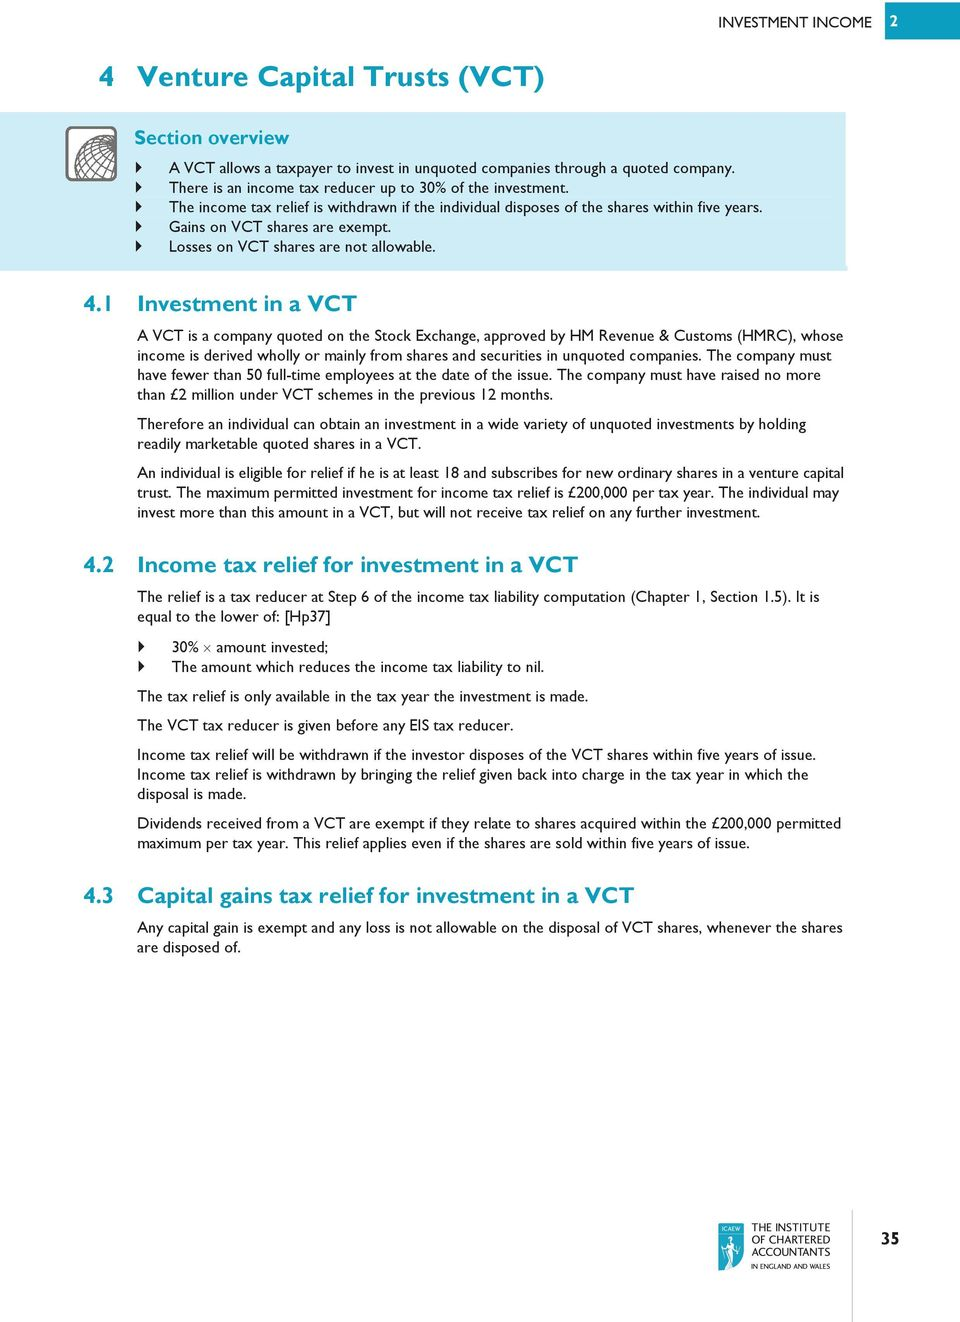 Losses on VCT shares are not allowable. 4.